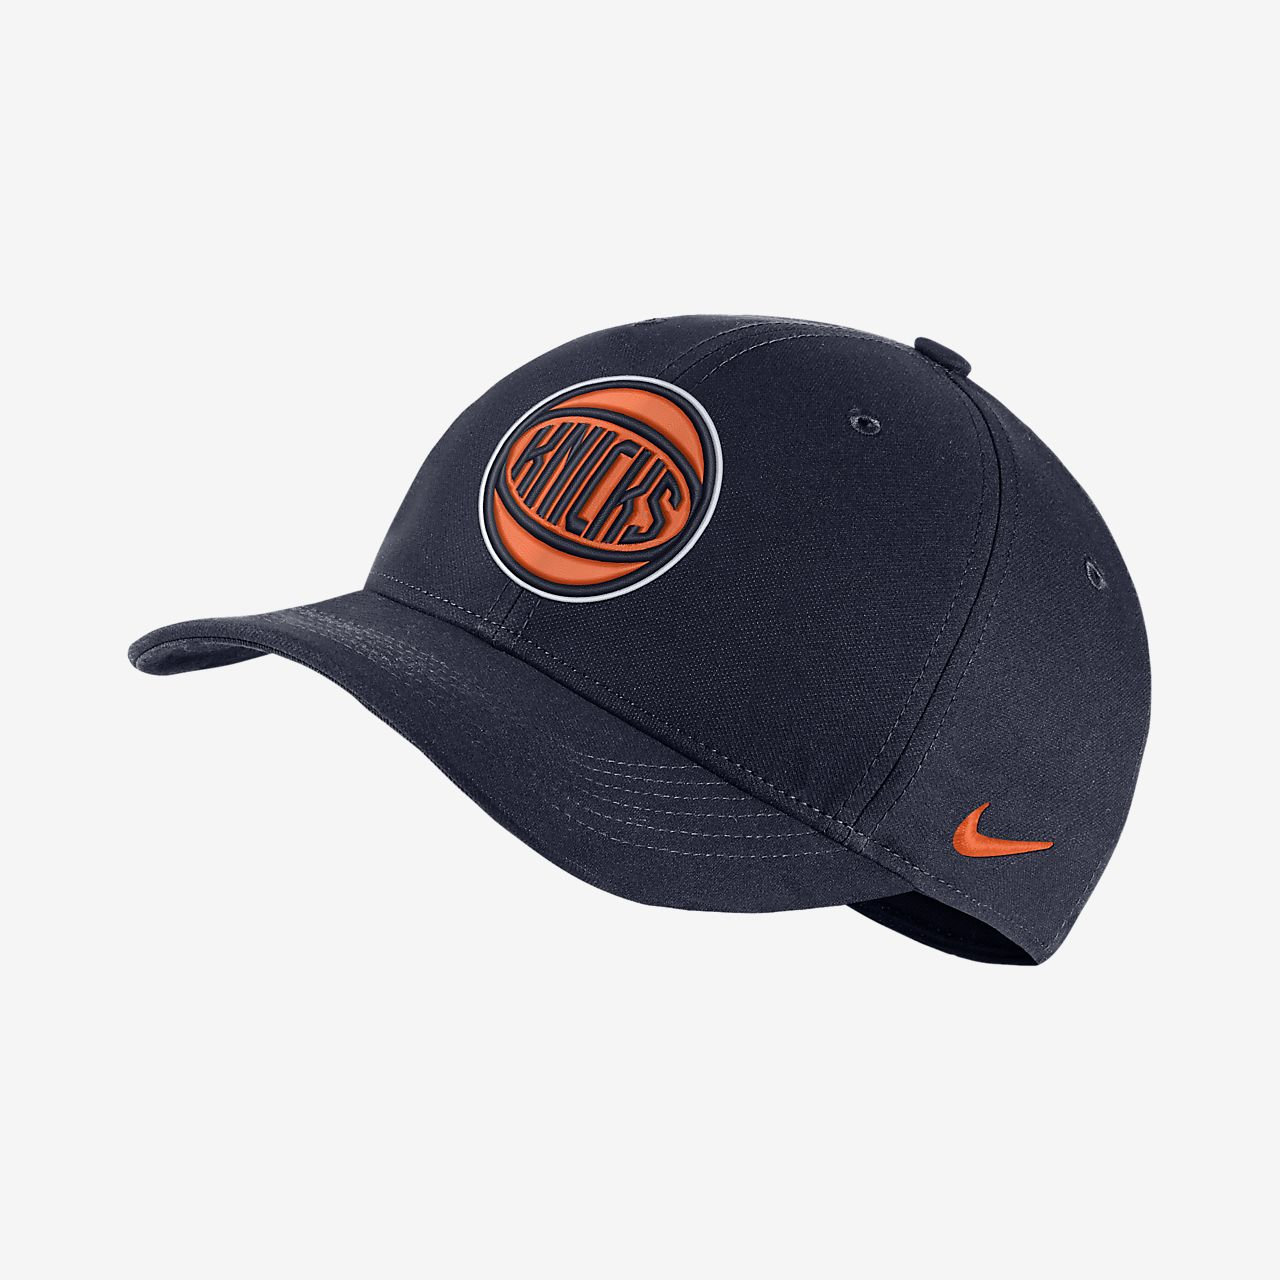 promo code f0c72 9fc8c New York Knicks City Edition Nike AeroBill Classic99 NBA Hat